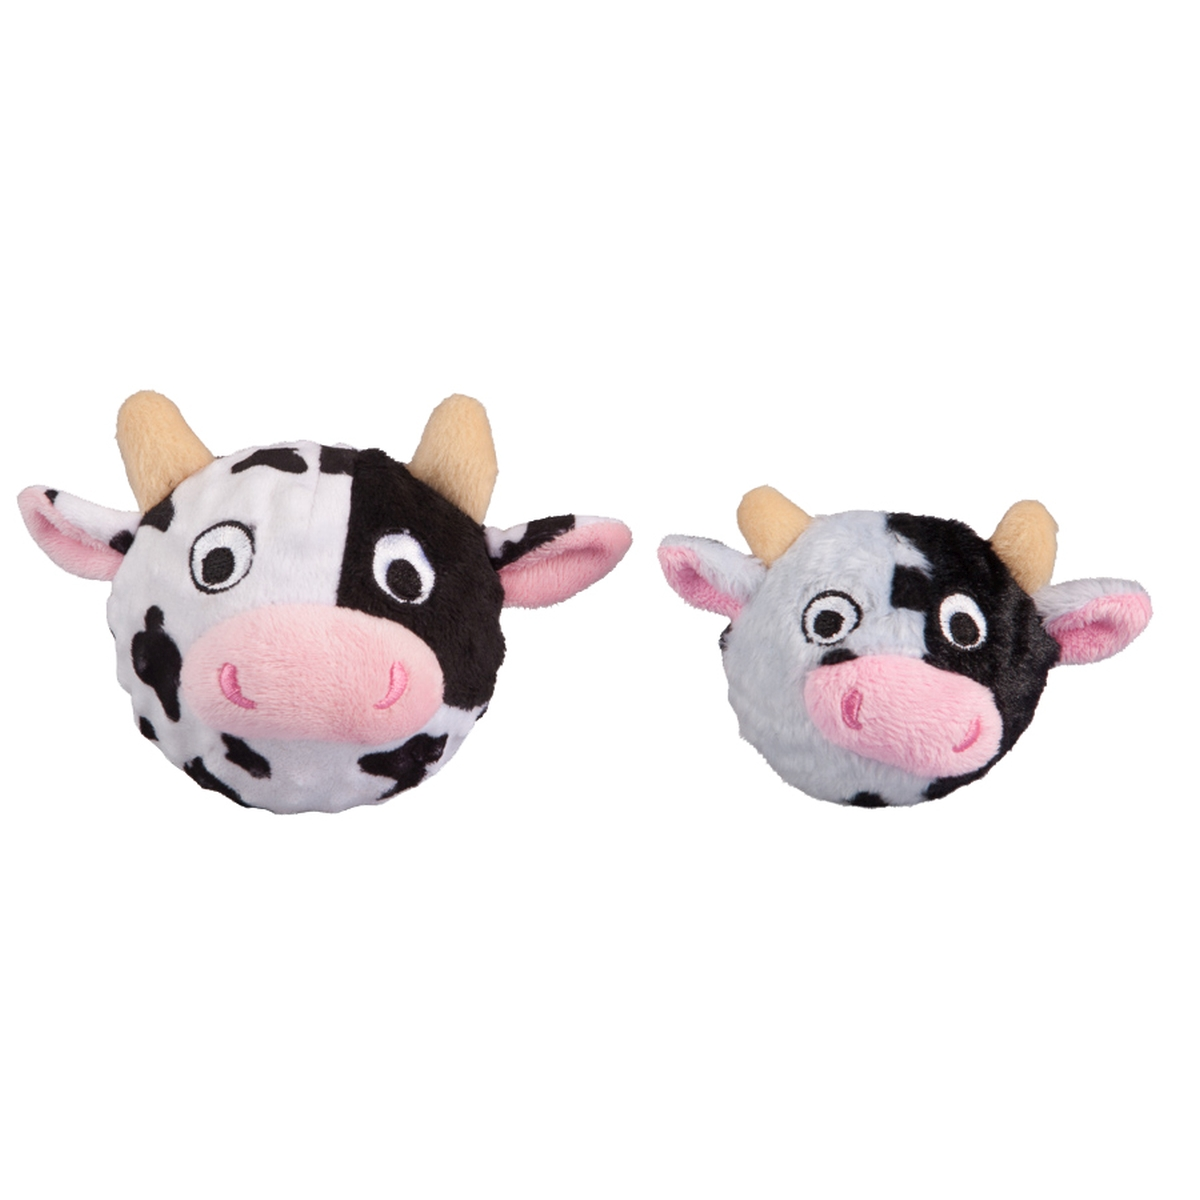 Cow faball zwart/wit